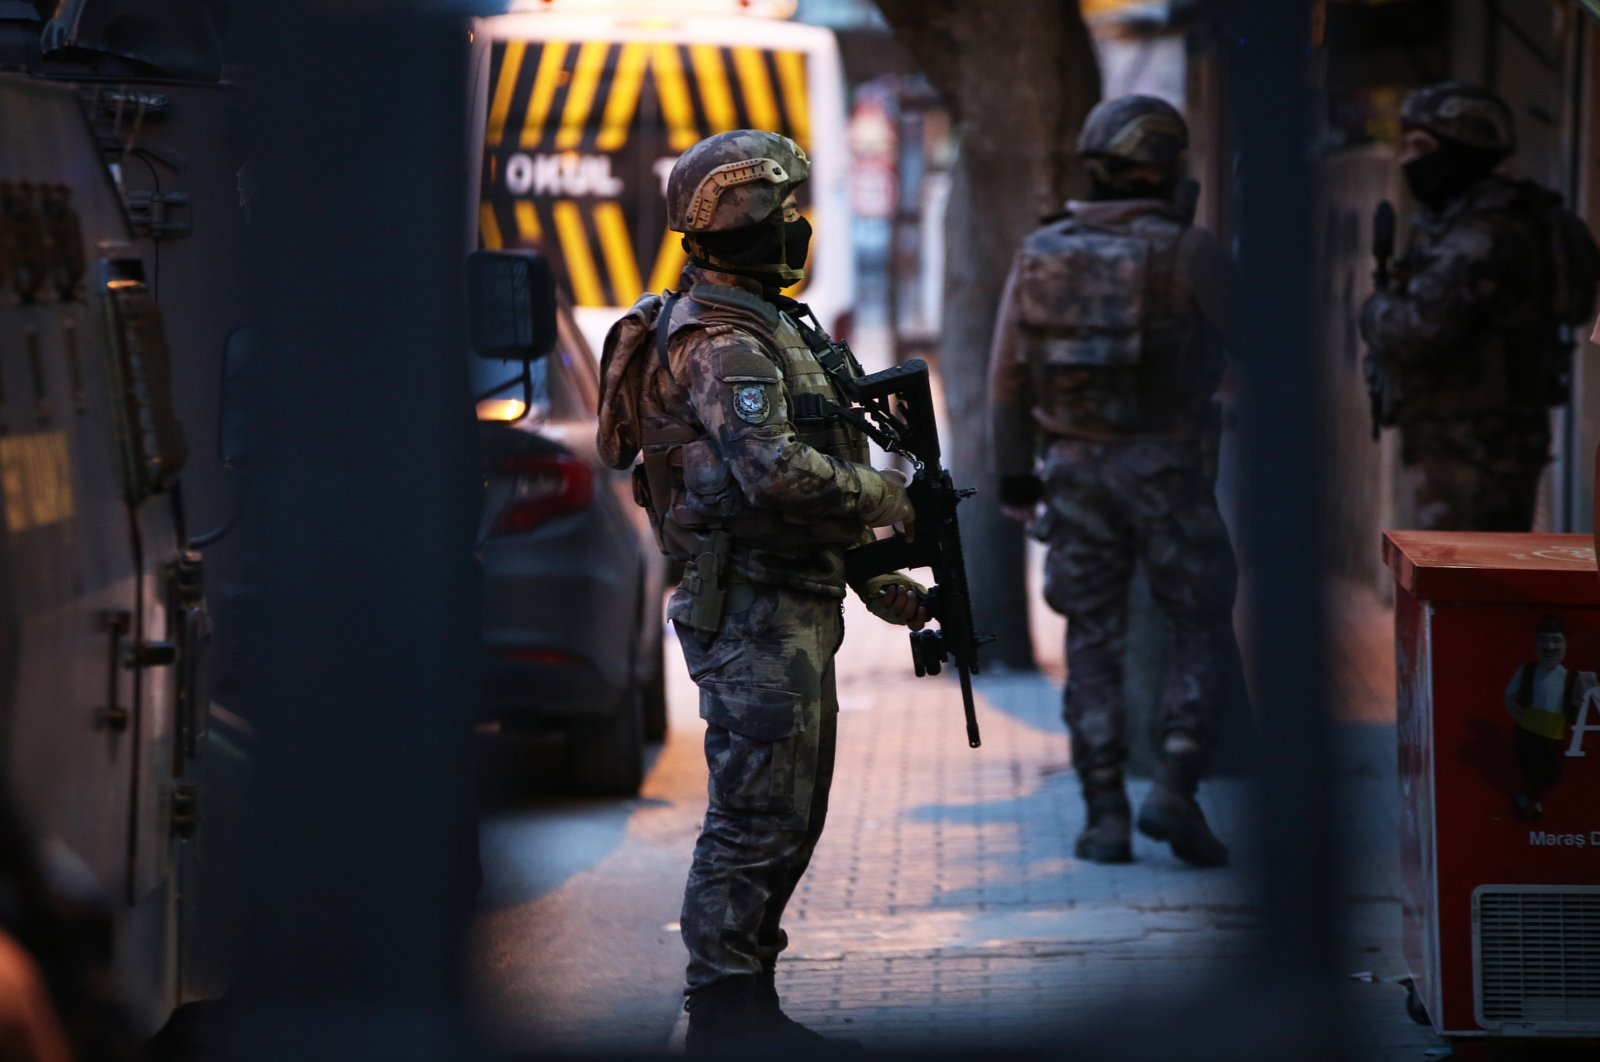 Turkey has been carrying out extensive anti-terror operations at home and abroad to capture terrorists.